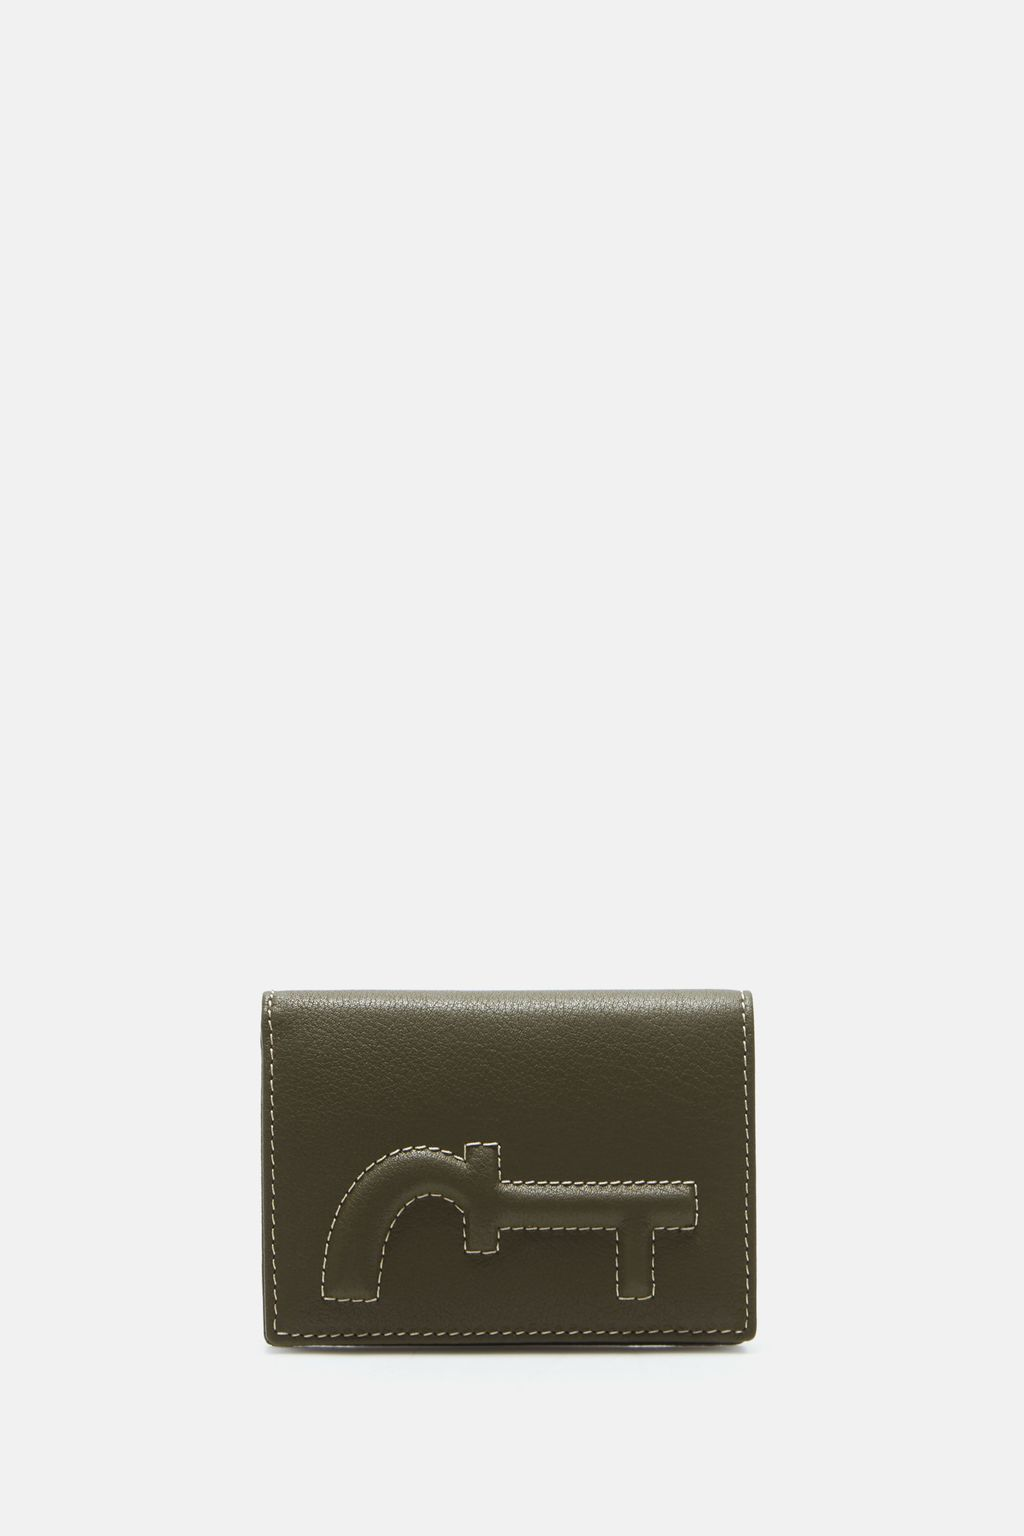 Doma Insignia | Small fold-over wallet